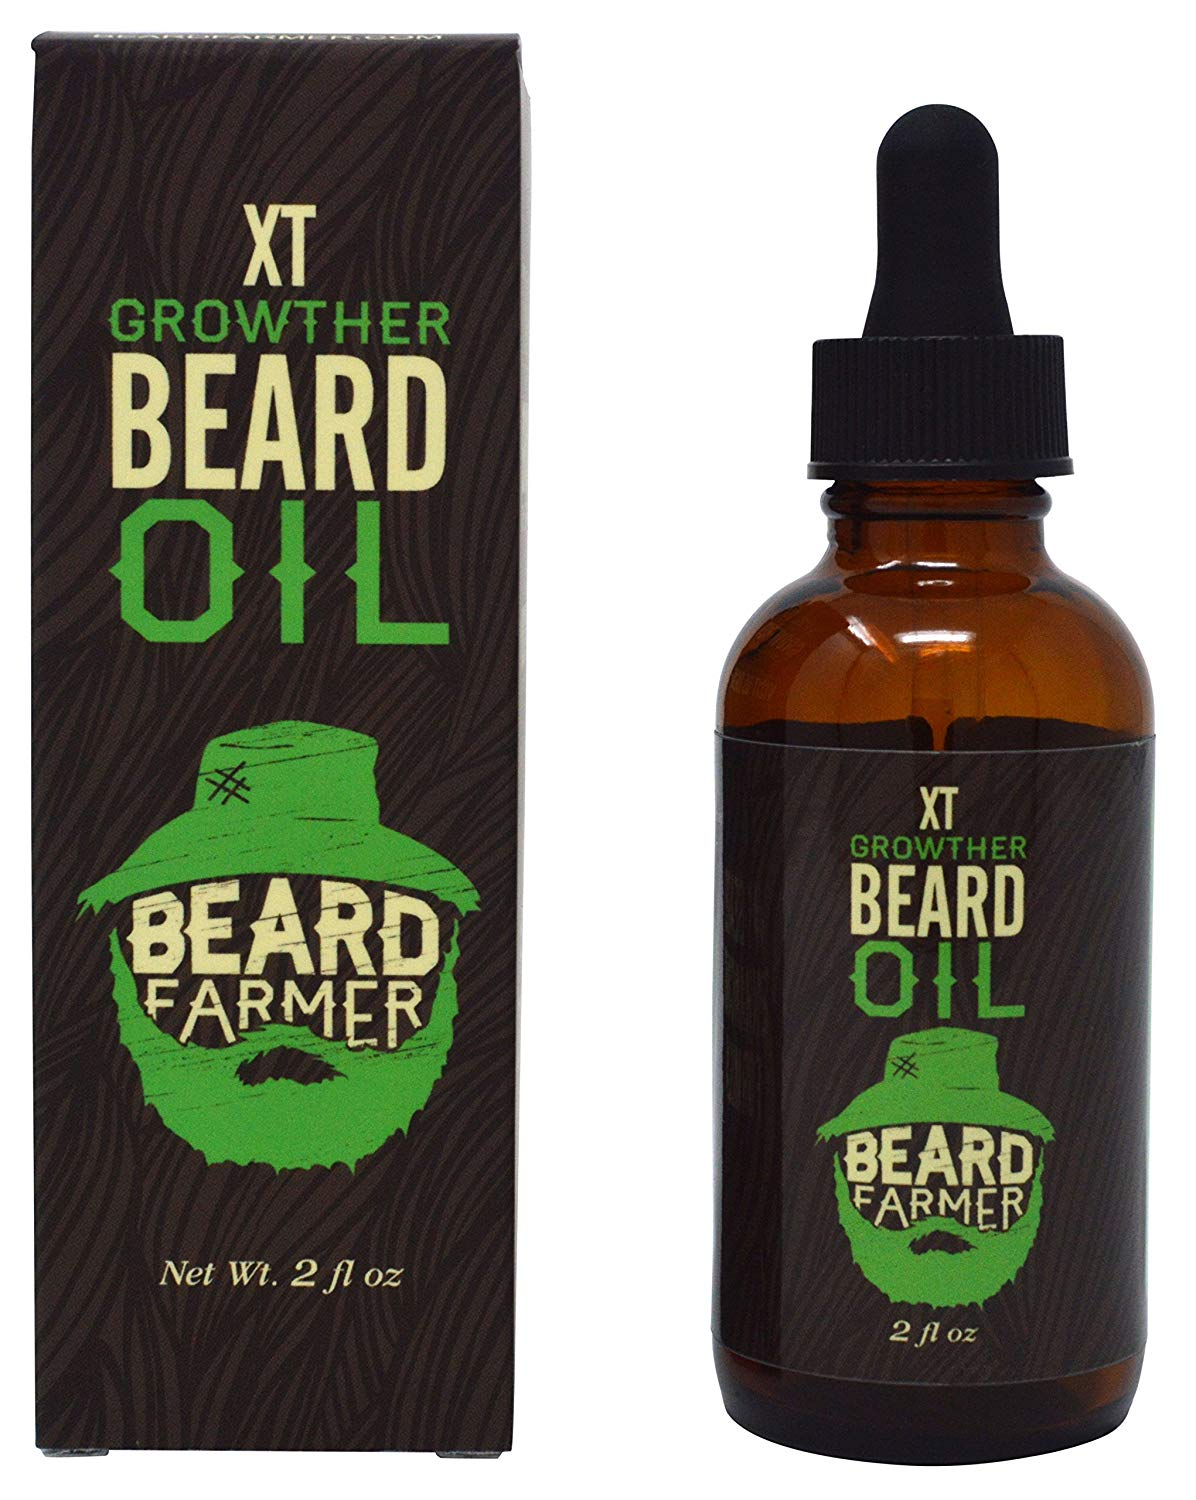 Beard Farmer - Growther XT Beard Oil (Extra Fast Beard Growth) All Natural Beard Growth Oil